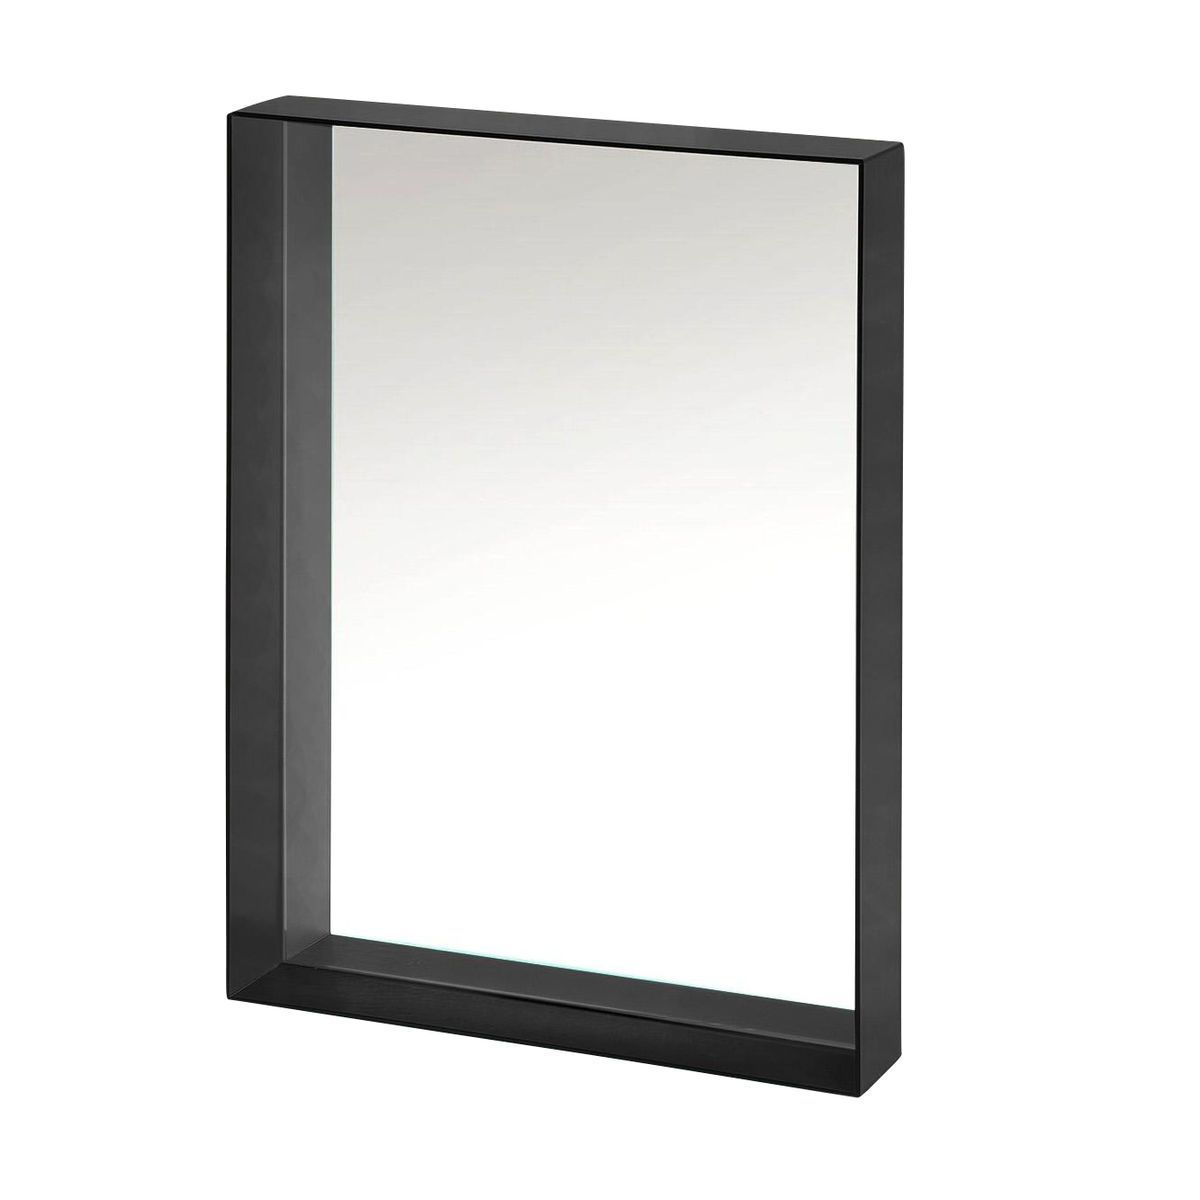 Only me mirror 50x70 kartell for Mirror 50 x 70